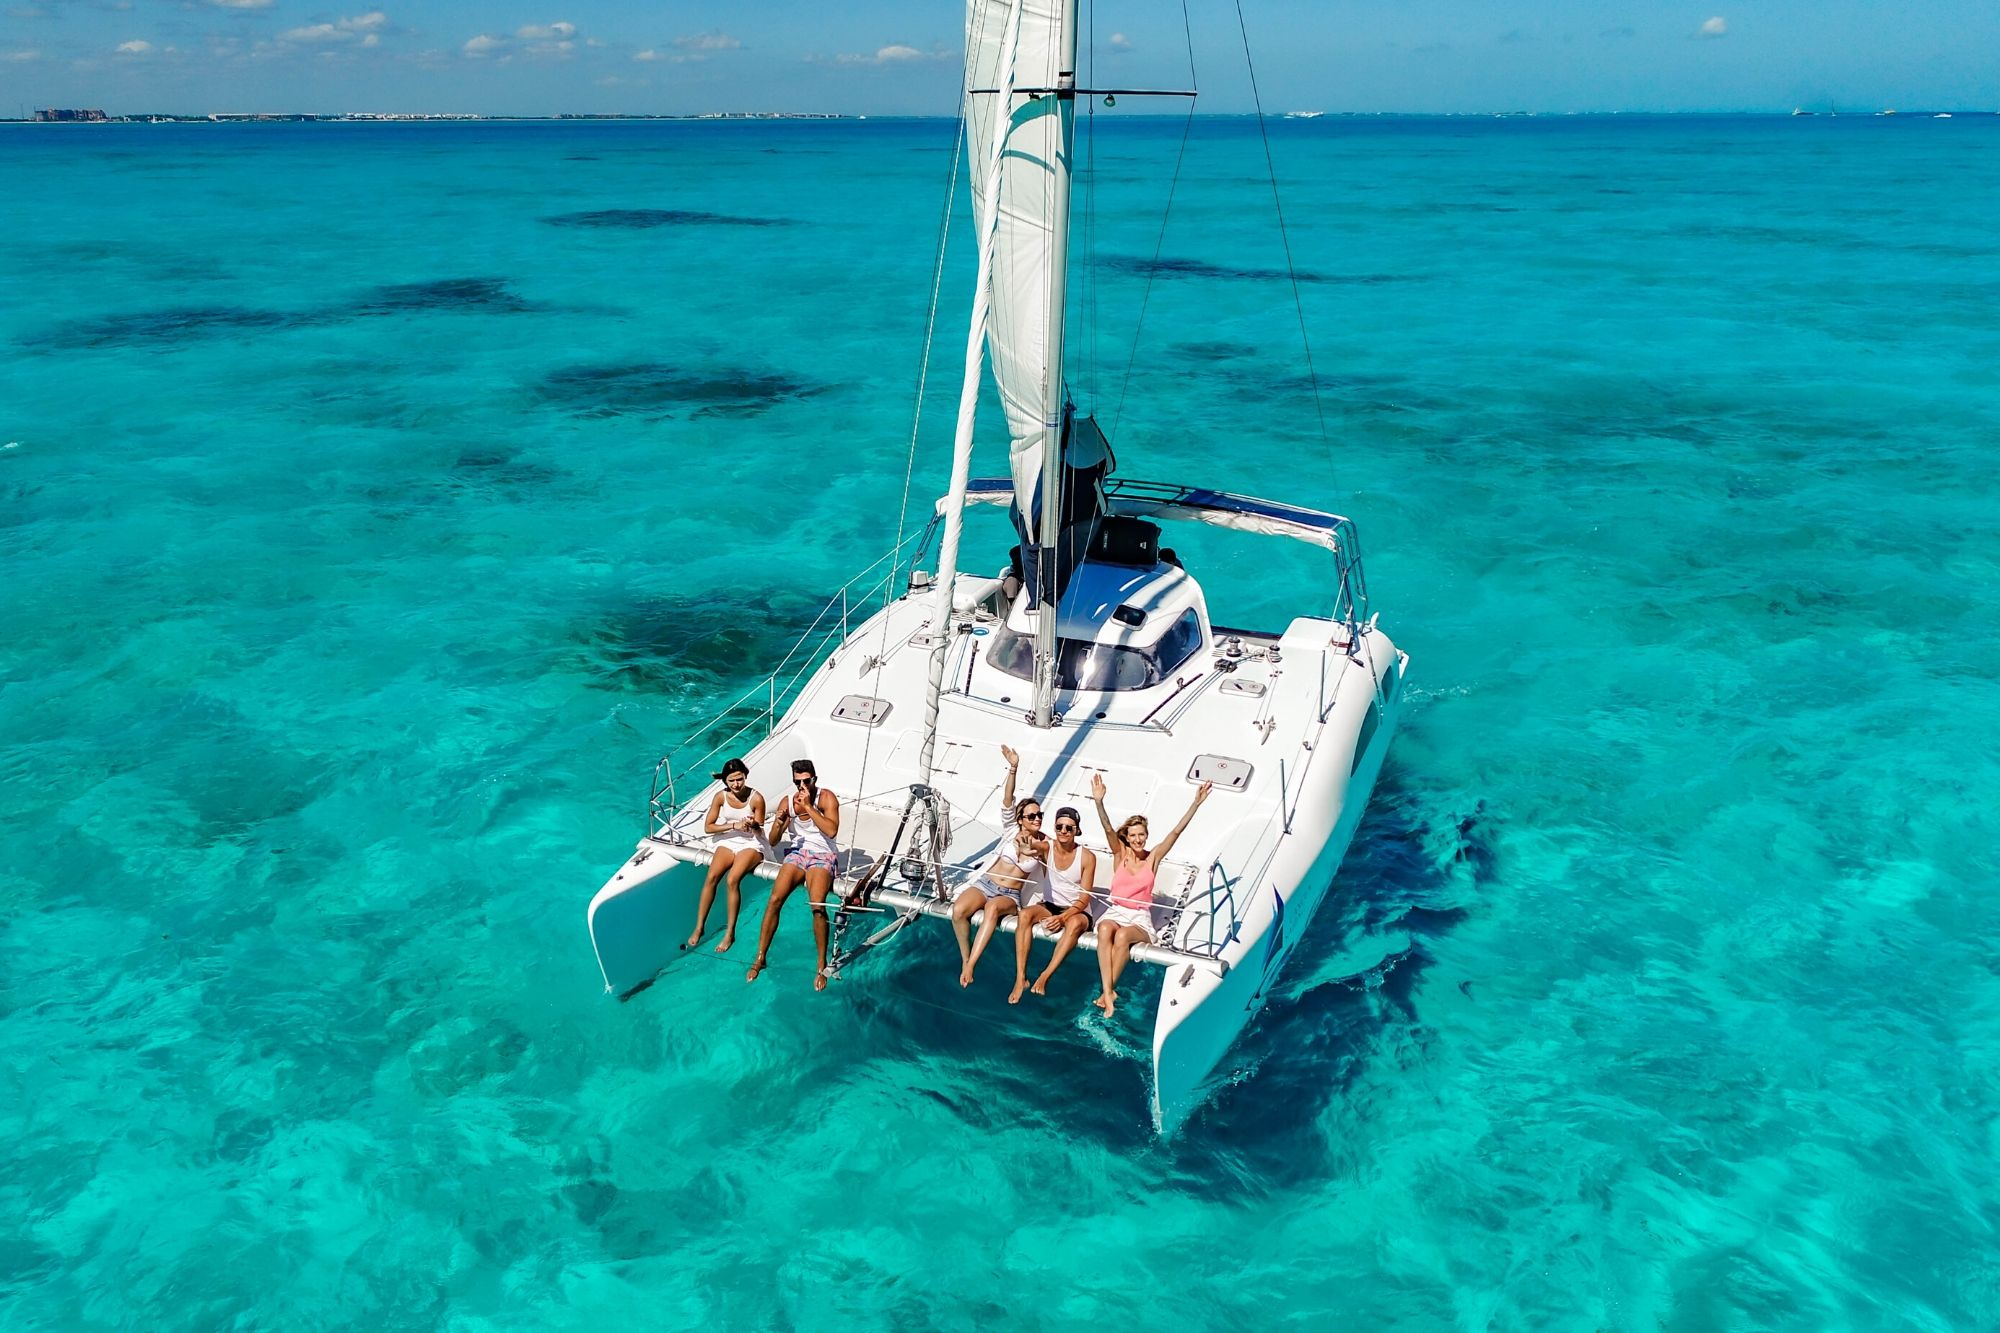 2 Nal Gone - Private tour to Isla Mujeres in catamaran - Cancun Sailing